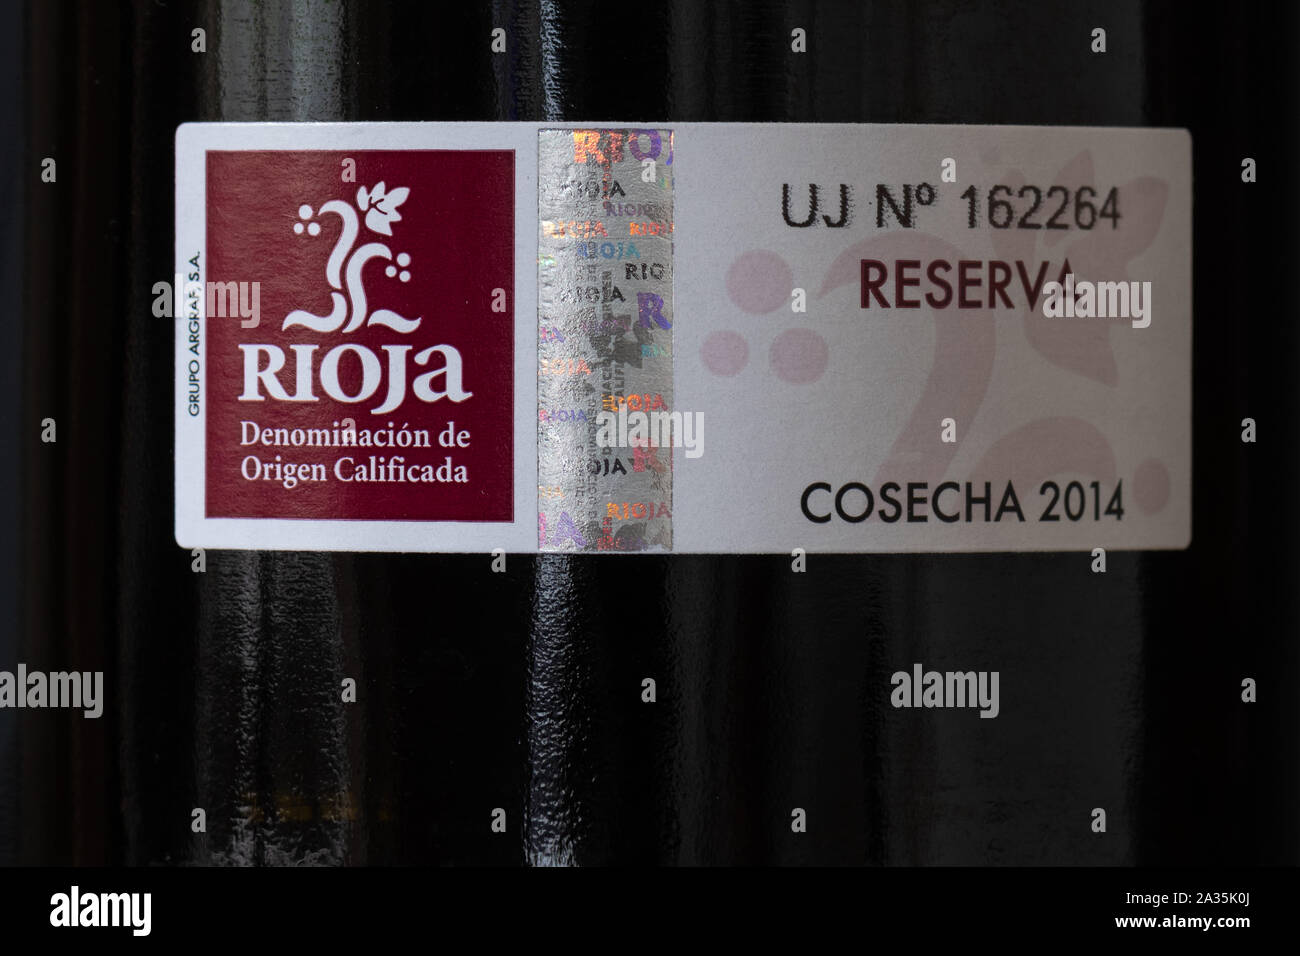 Rioja aging classification and wine quality assurance label on bottle of rioja reserva wine Stock Photo